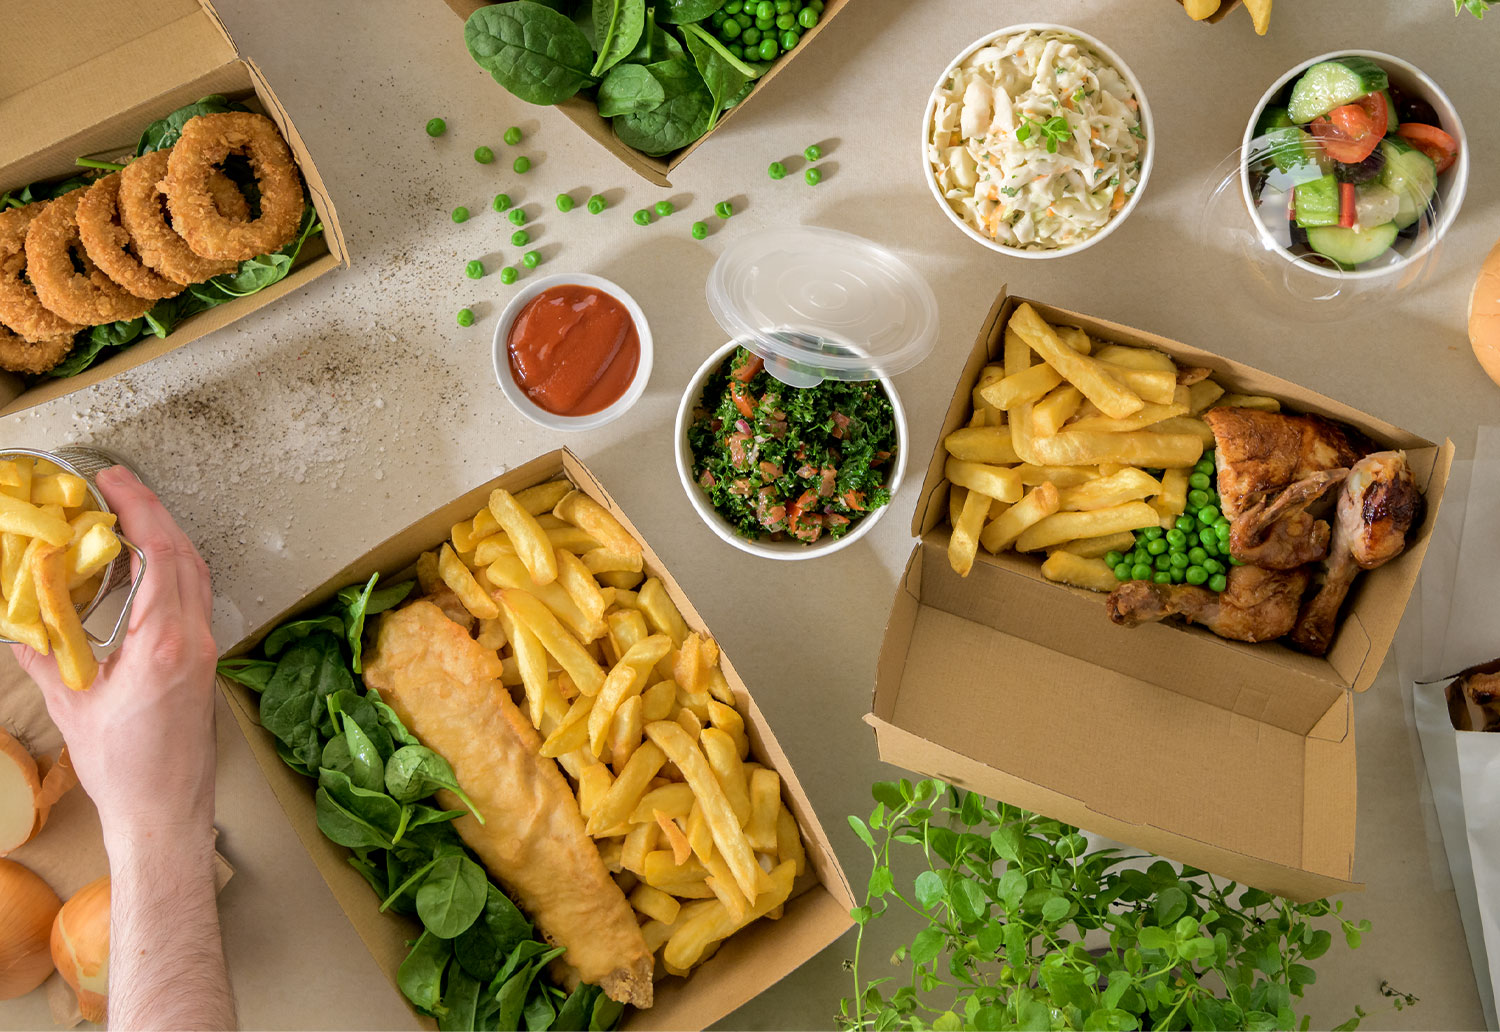 Images of takeaway packaging, with food efficiently packed inside